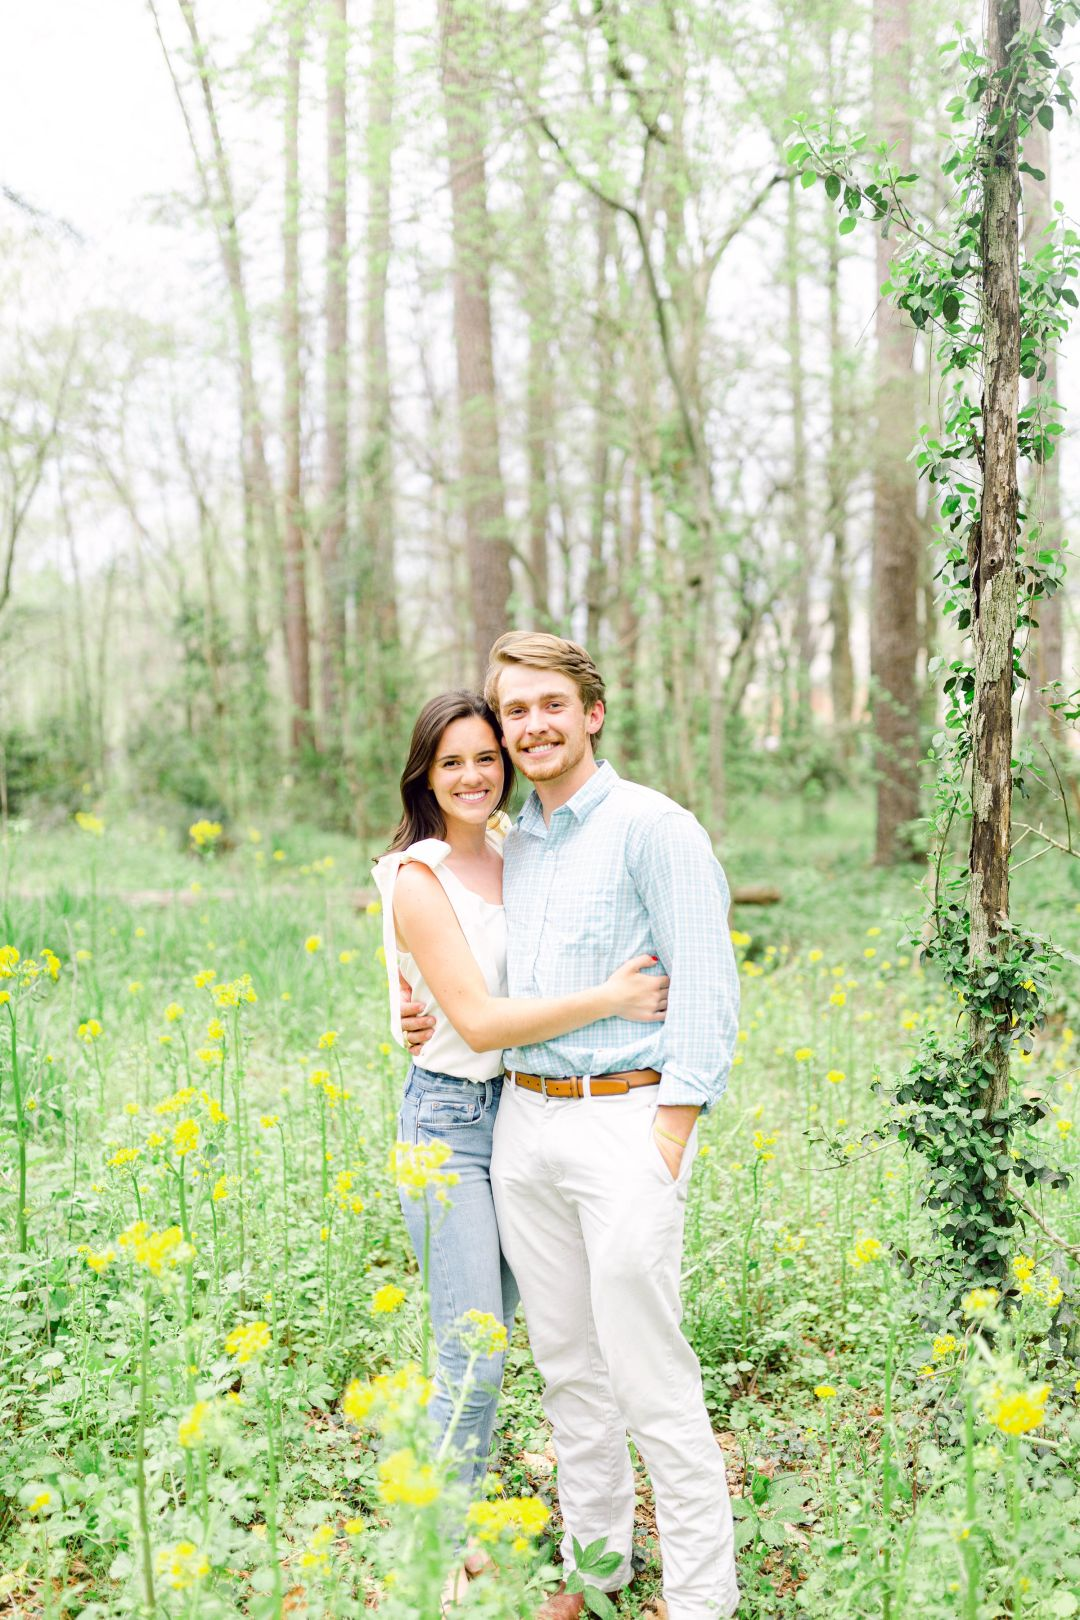 spring engagement photoshoot ideas